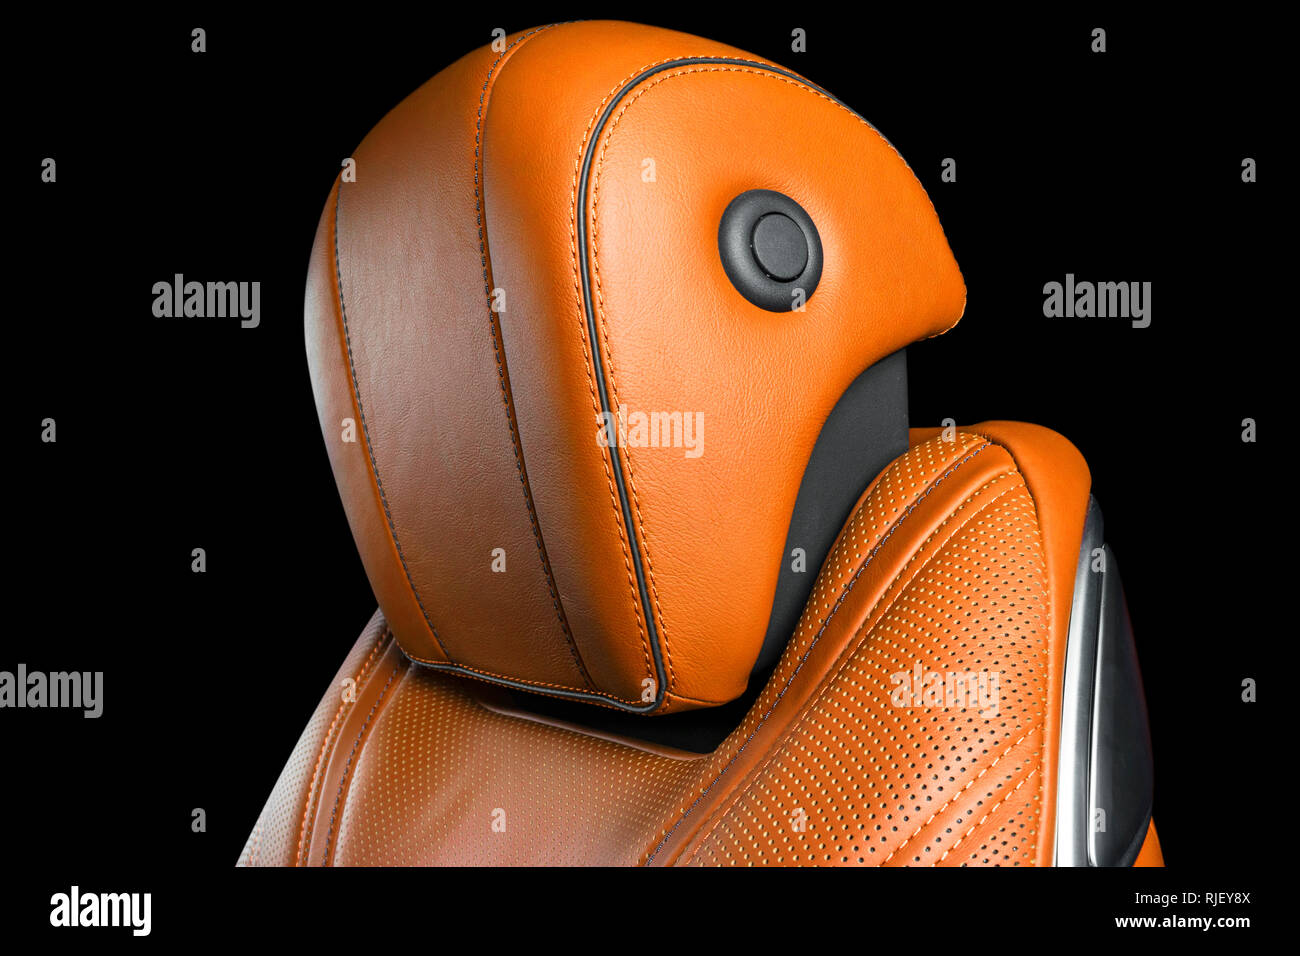 Brown Leather Interior Of The Luxury Modern Car Perforated Orange Leather Comfortable Seats With Stitching Isolated On Black Background Modern Car I Stock Photo Alamy